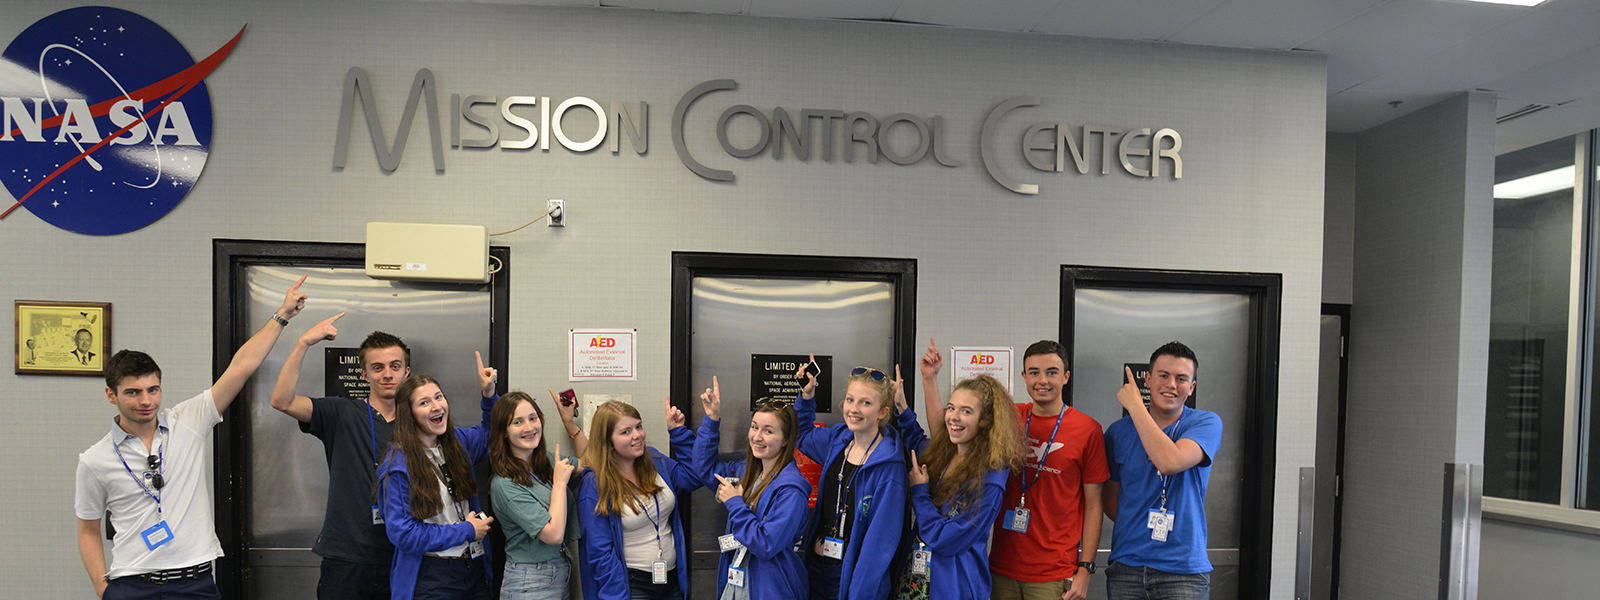 Pupils pointing to the NASA Mission Control Center sign